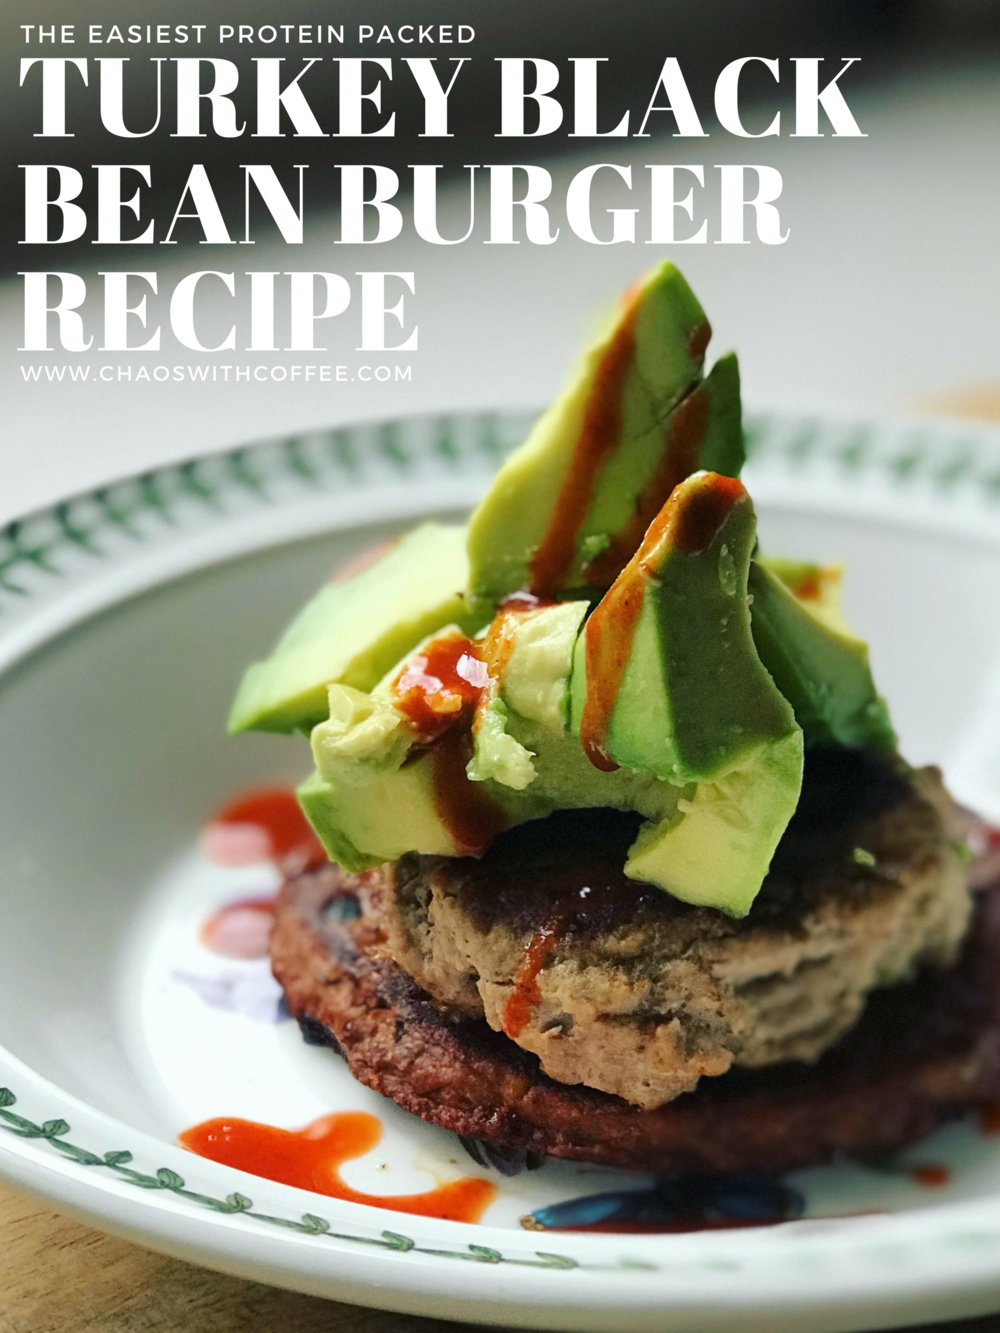 Easy Turkey Black Bean Burgers